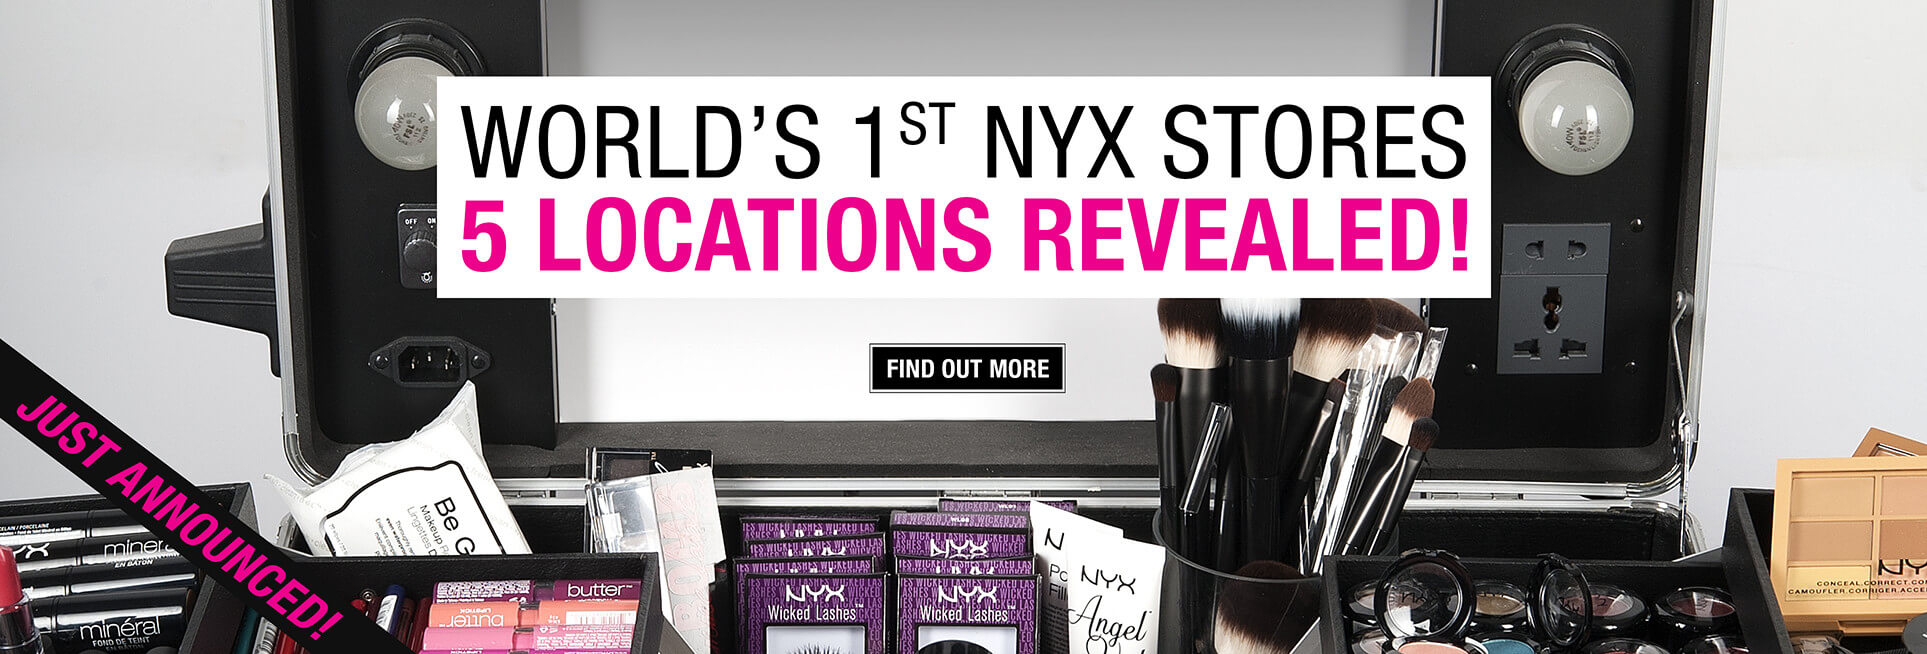 World's First NYX Stores